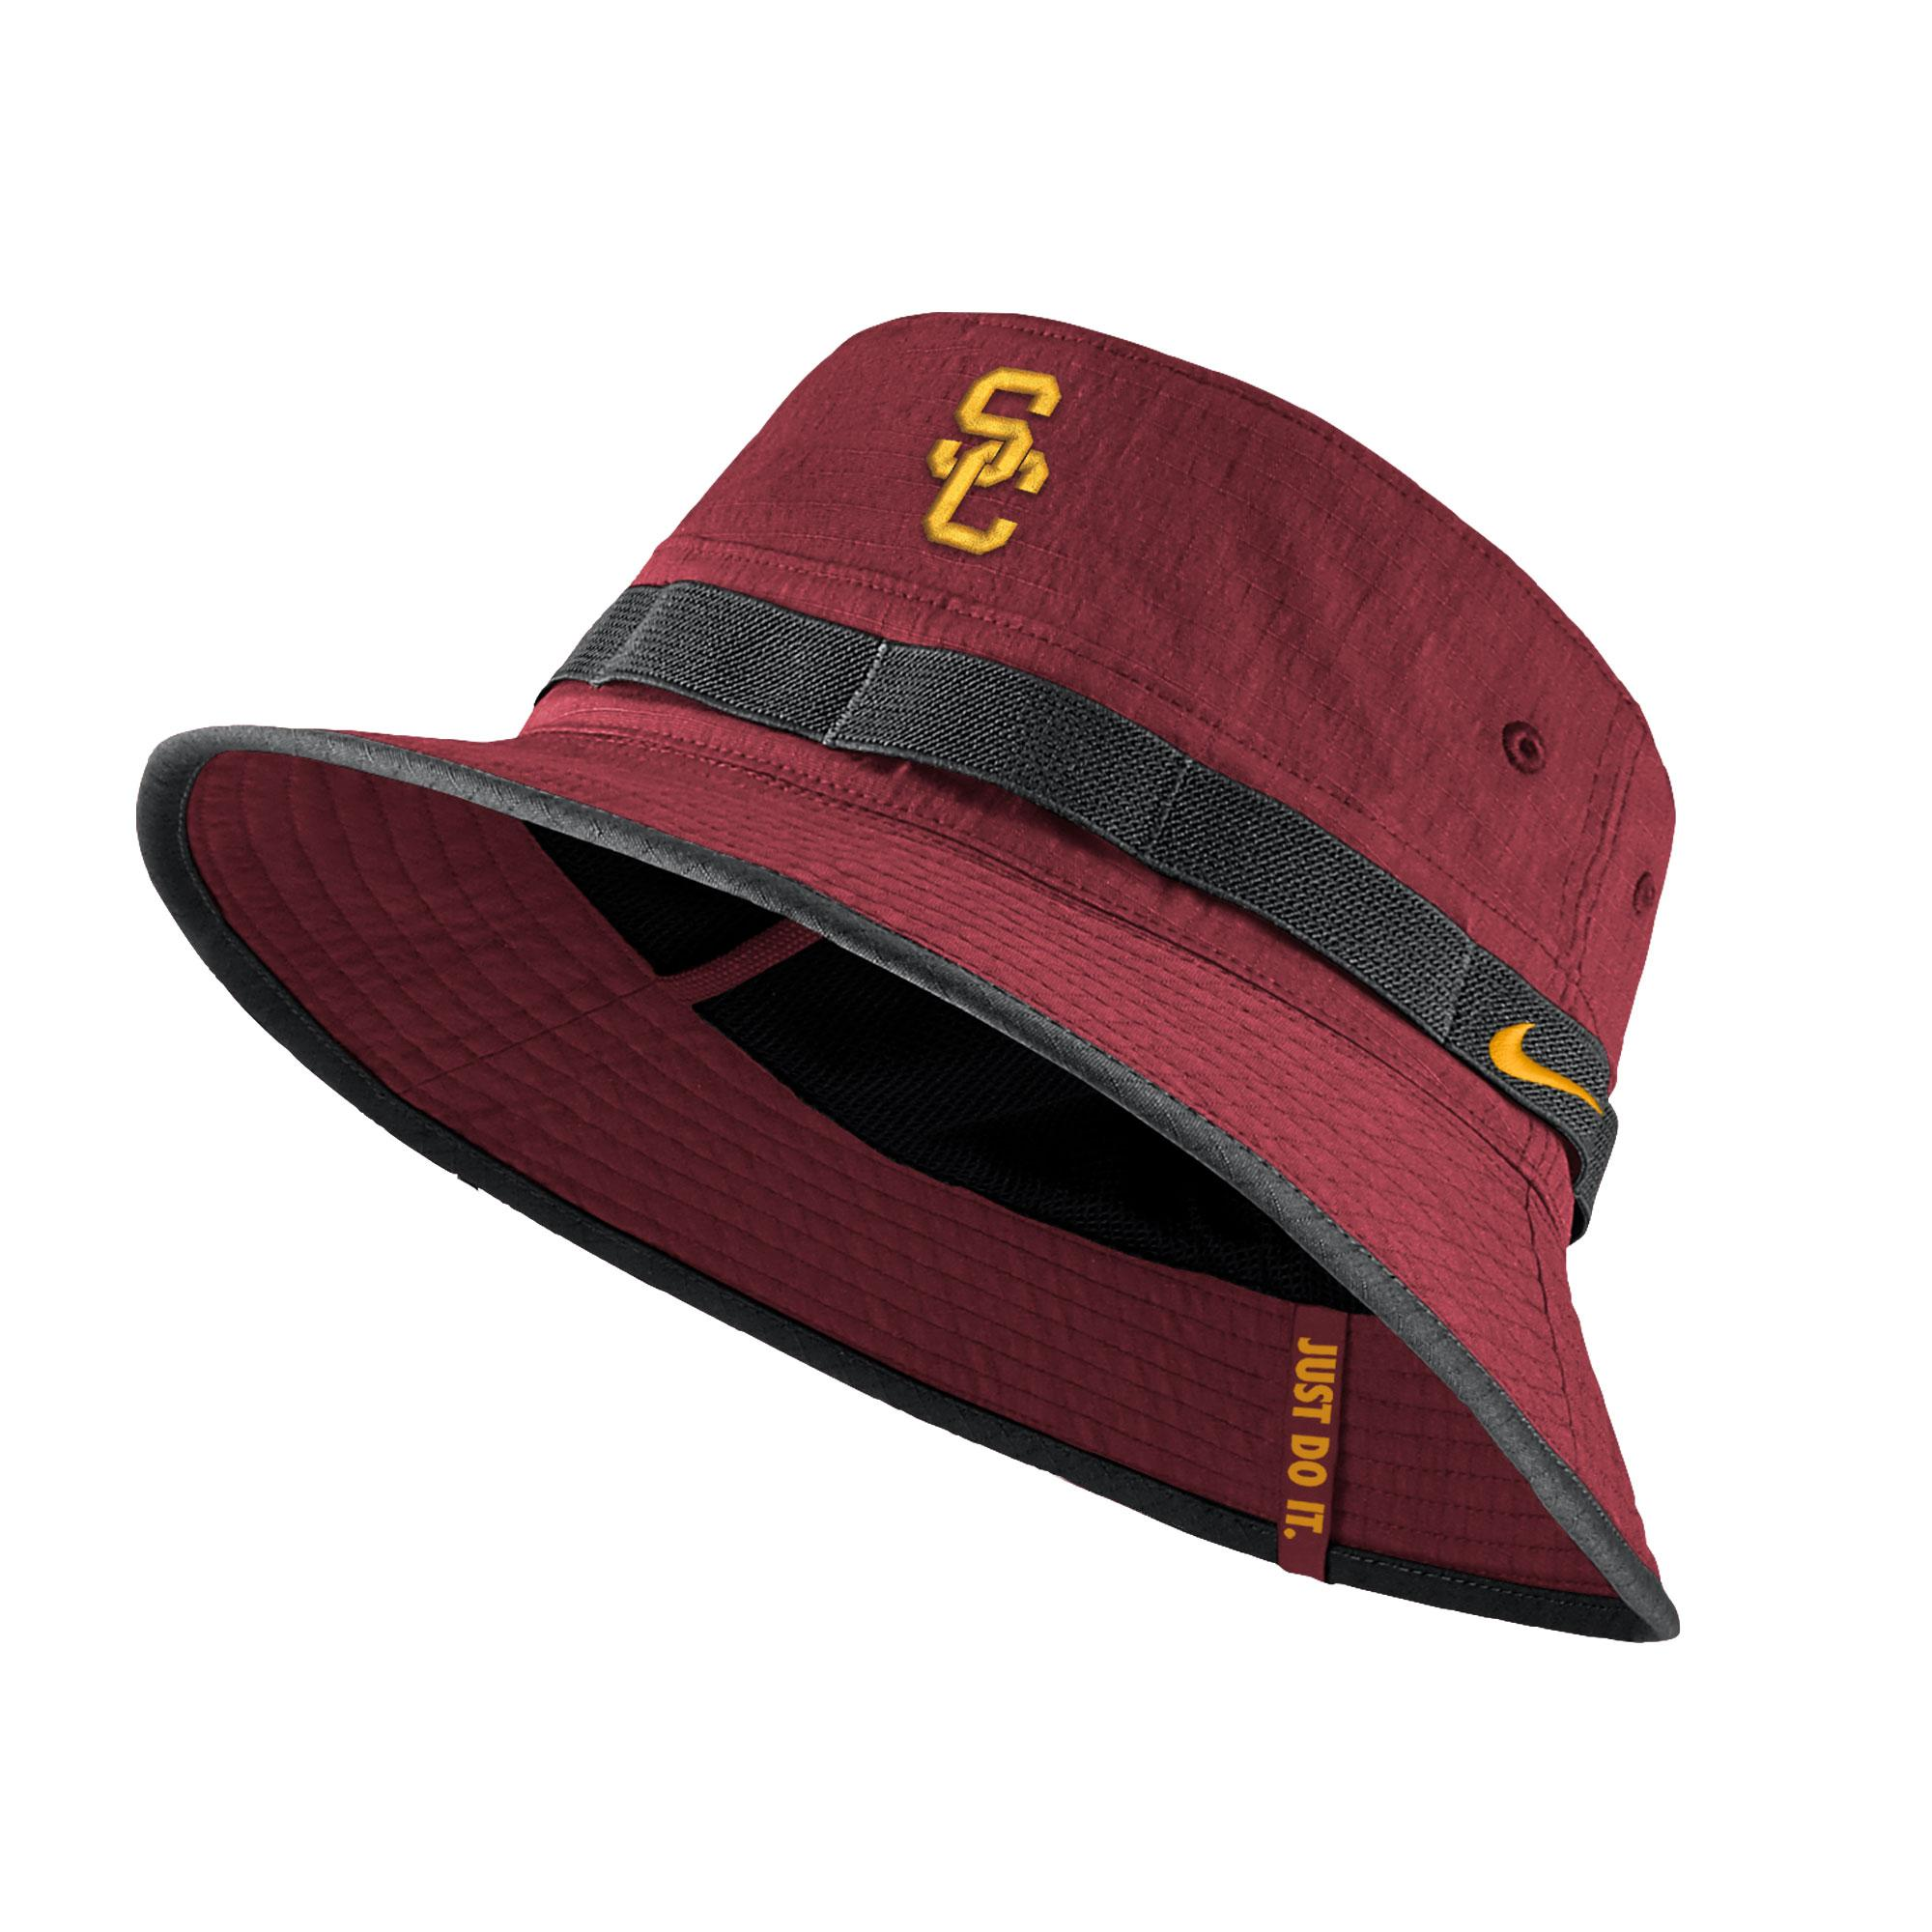 db9adf6f36a22 promo code for nike usc trojans wool classic performance adjustable hat  cardinal f8e00 8bc83; where can i buy official store on wholesale 7f5e3  de60a usc ...